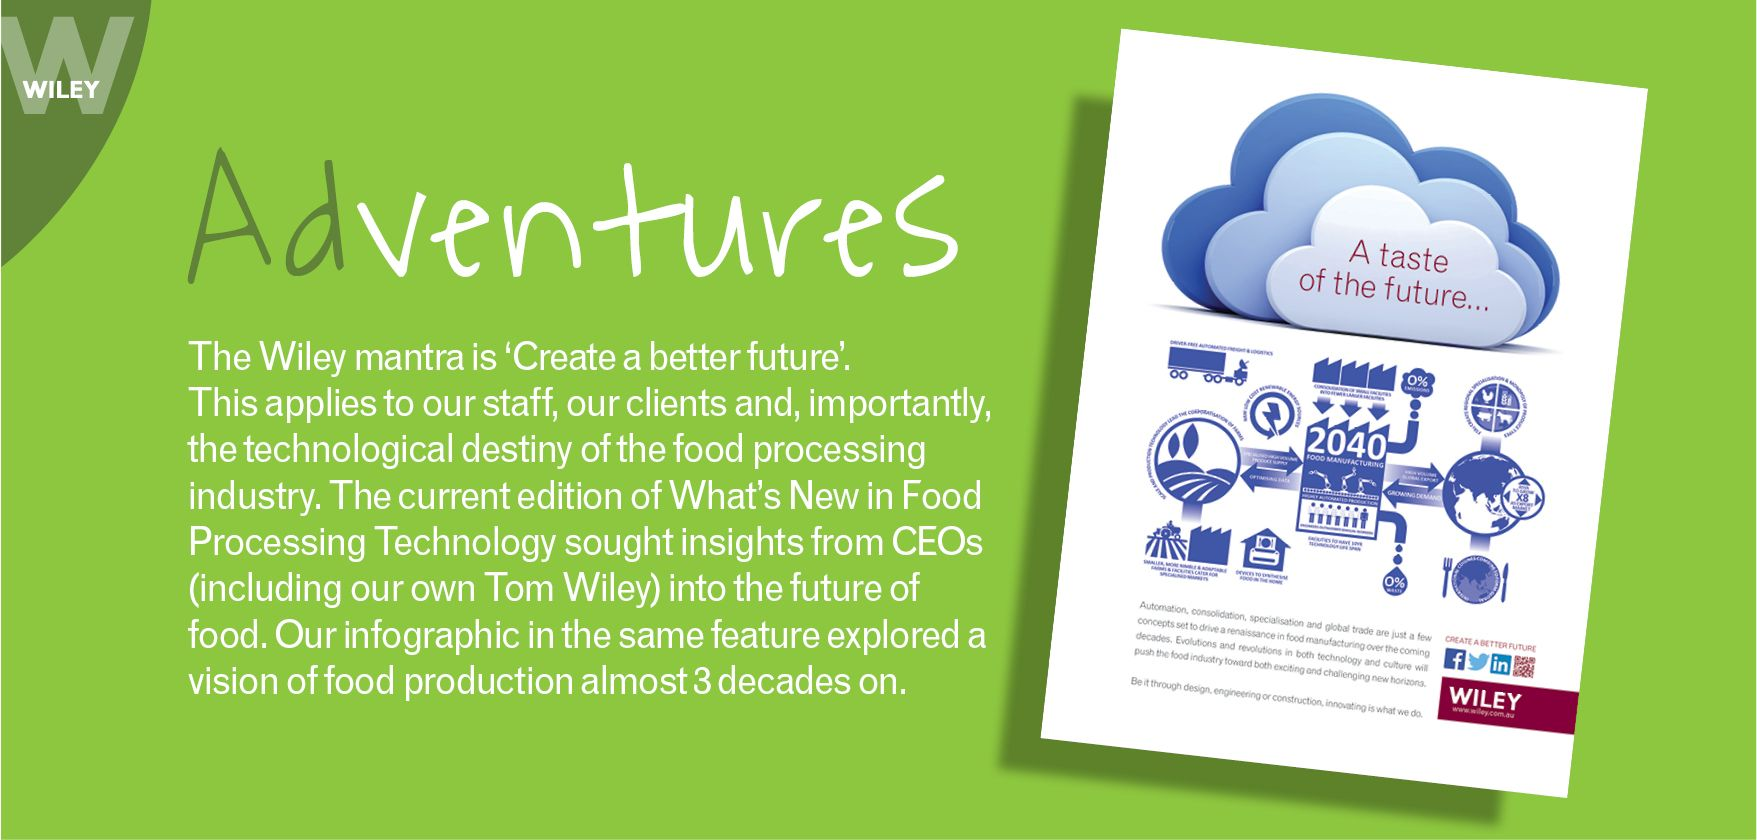 CEO Insights ADventure wiley Insight, Adventure, How to